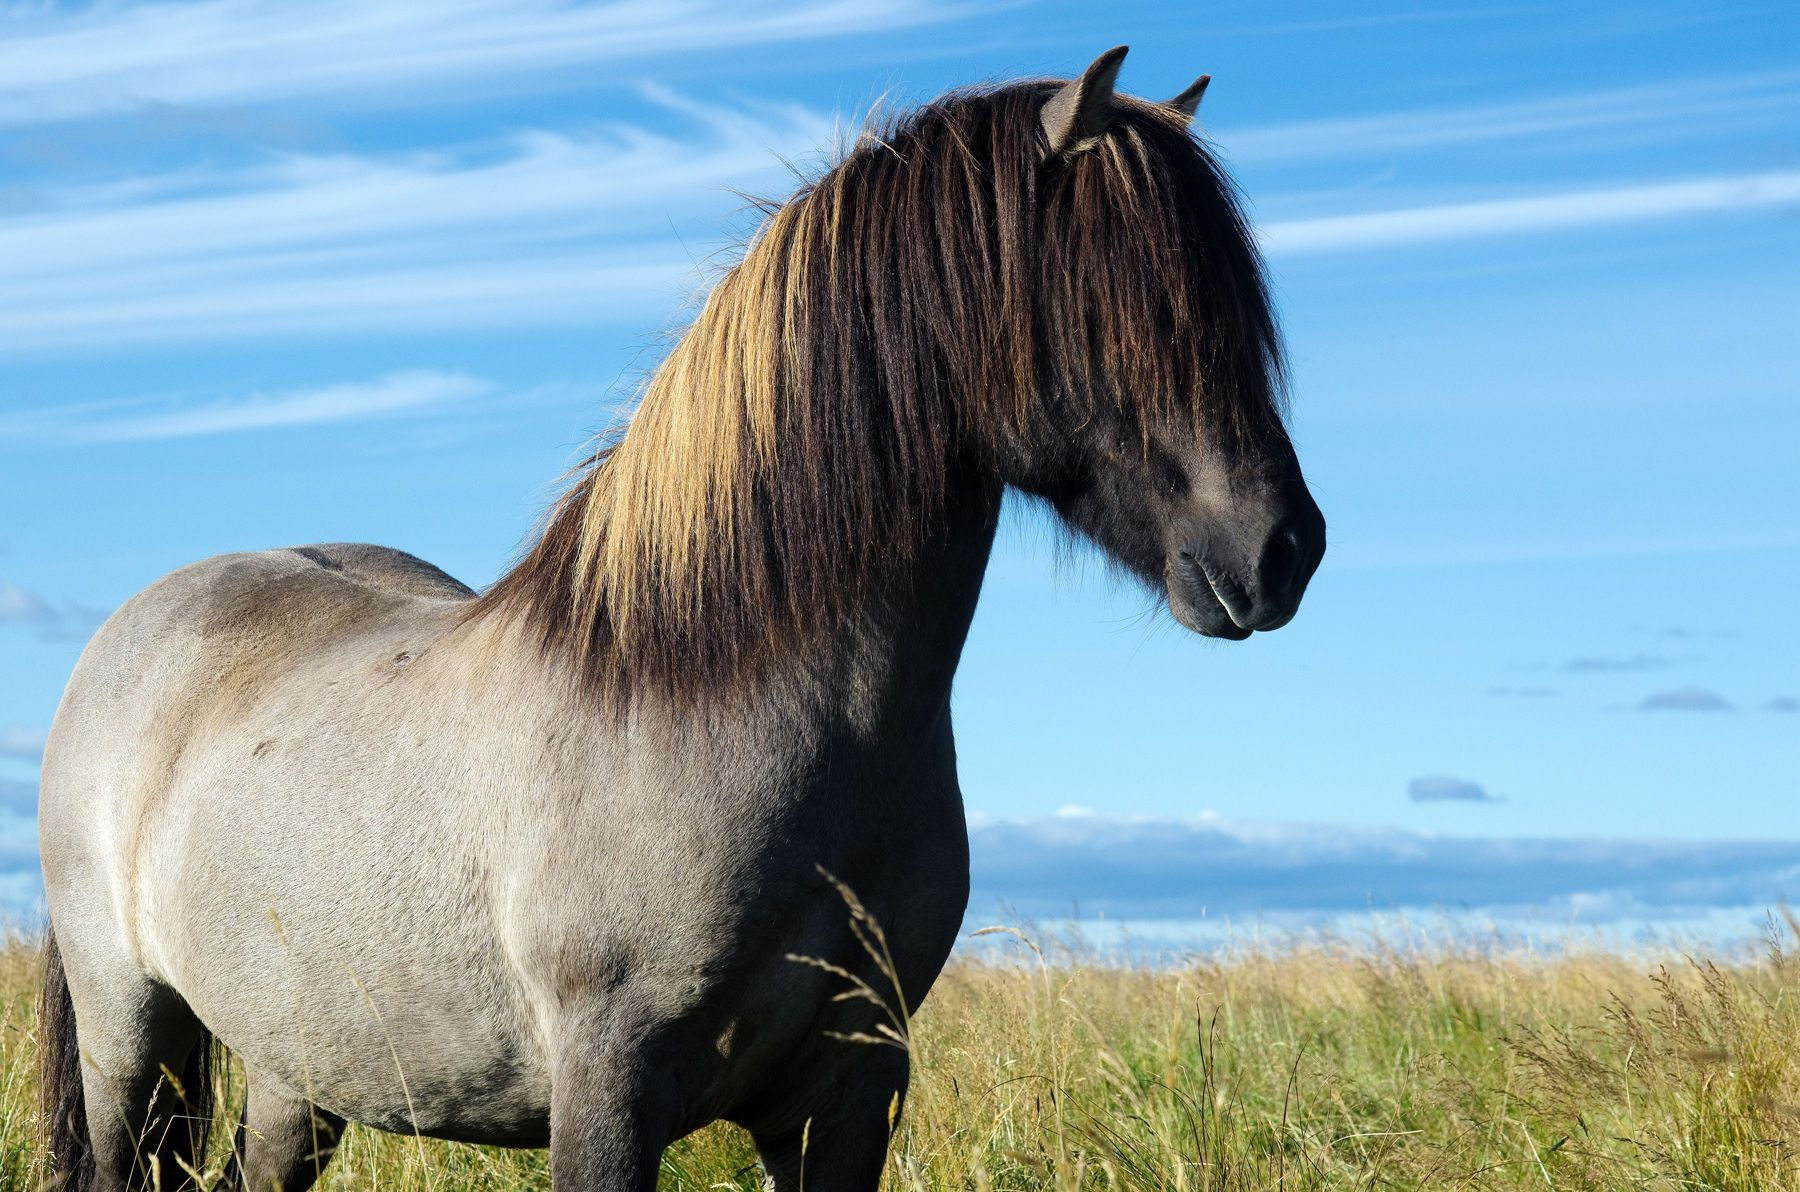 A blue dun (grulla) Icelandic horse outside of Hella, Iceland on September 22nd, 2011.